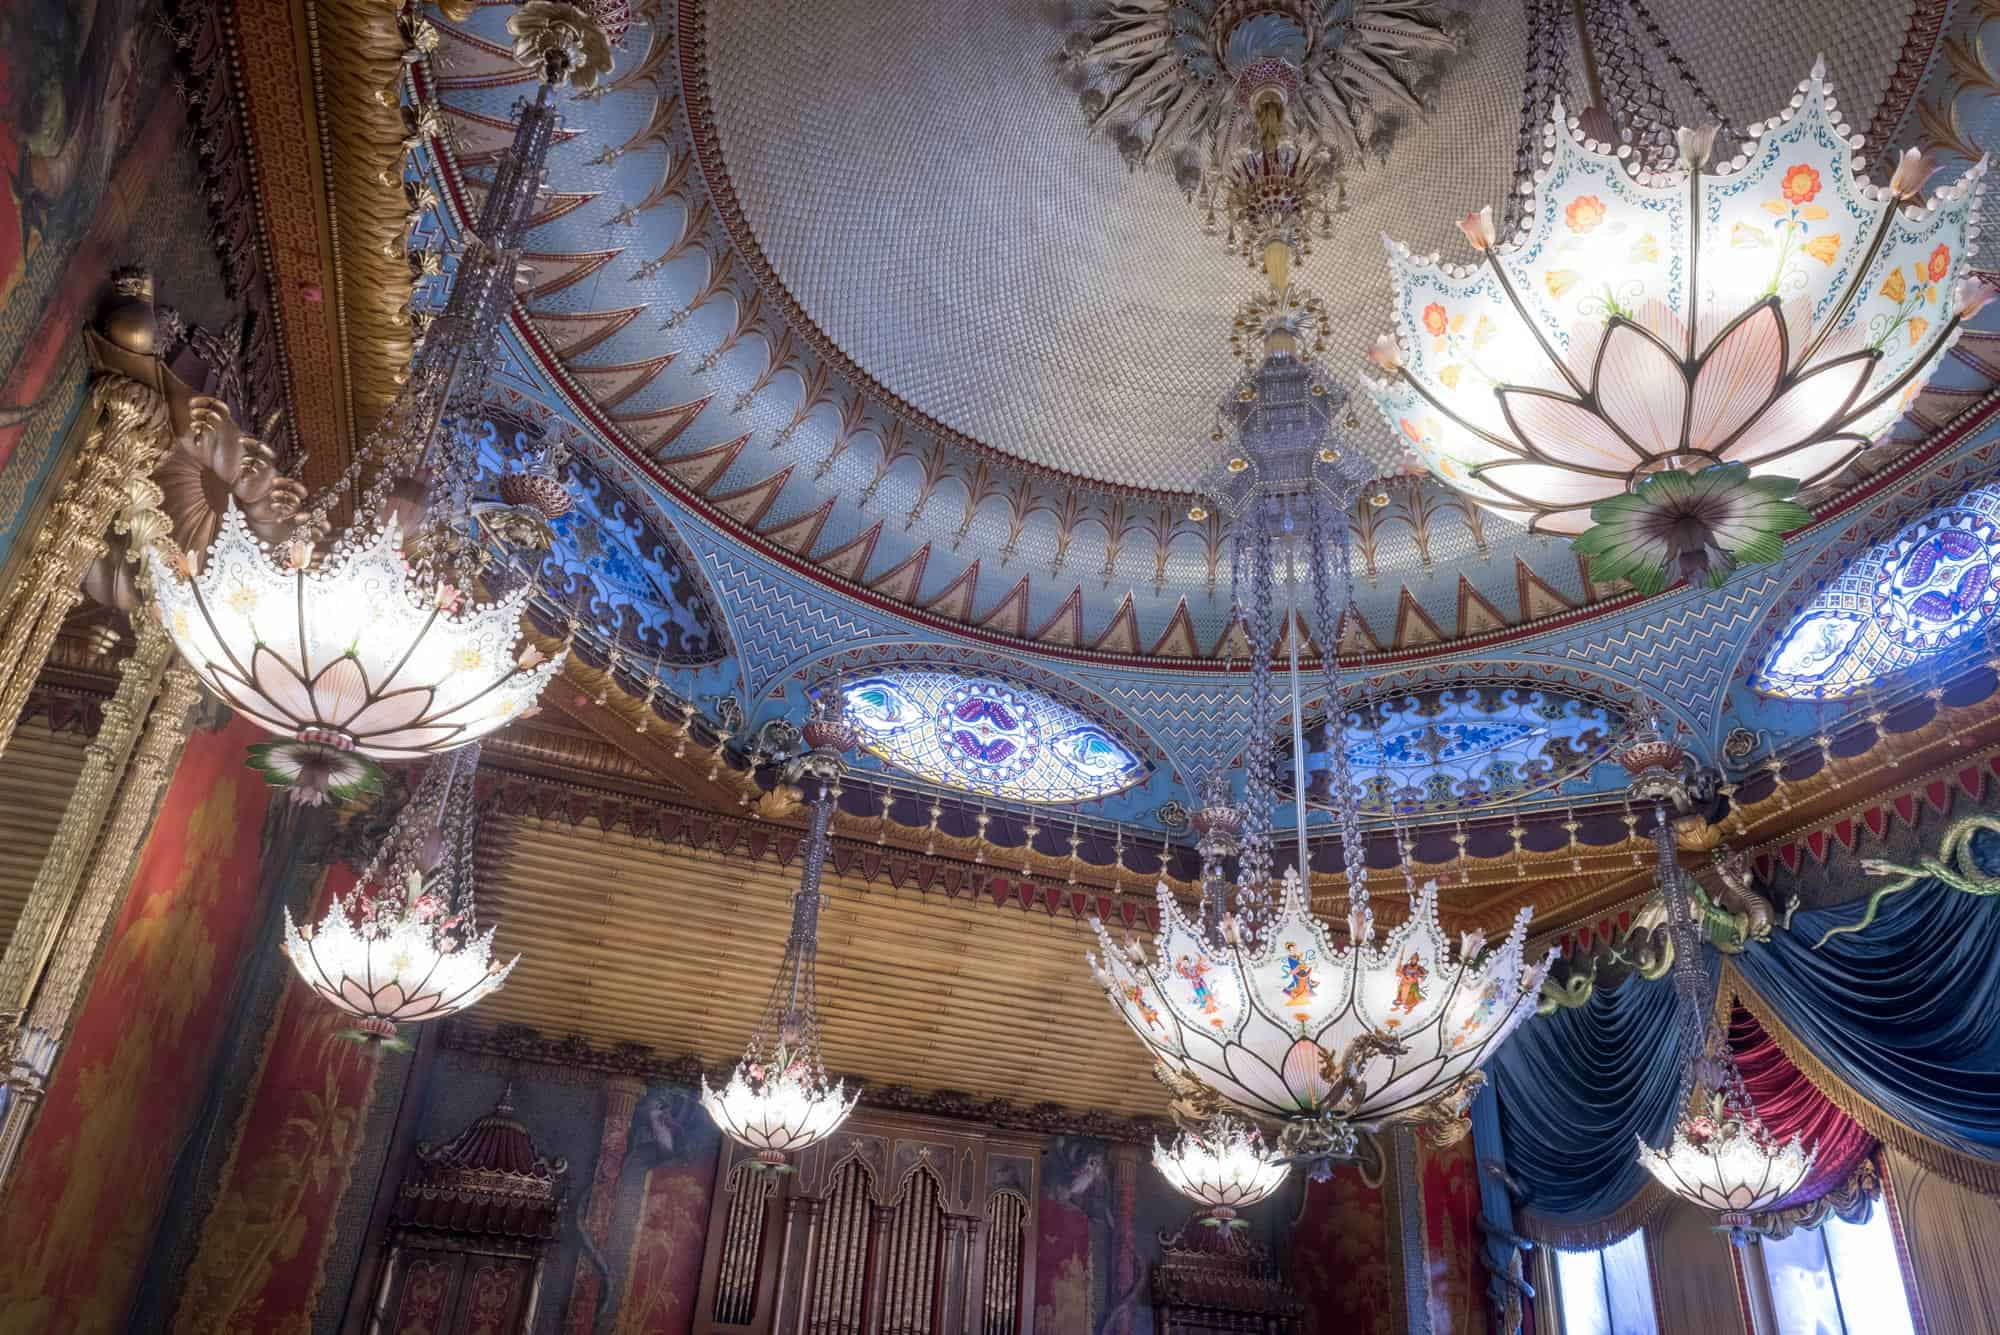 Royal Pavilion Music Room